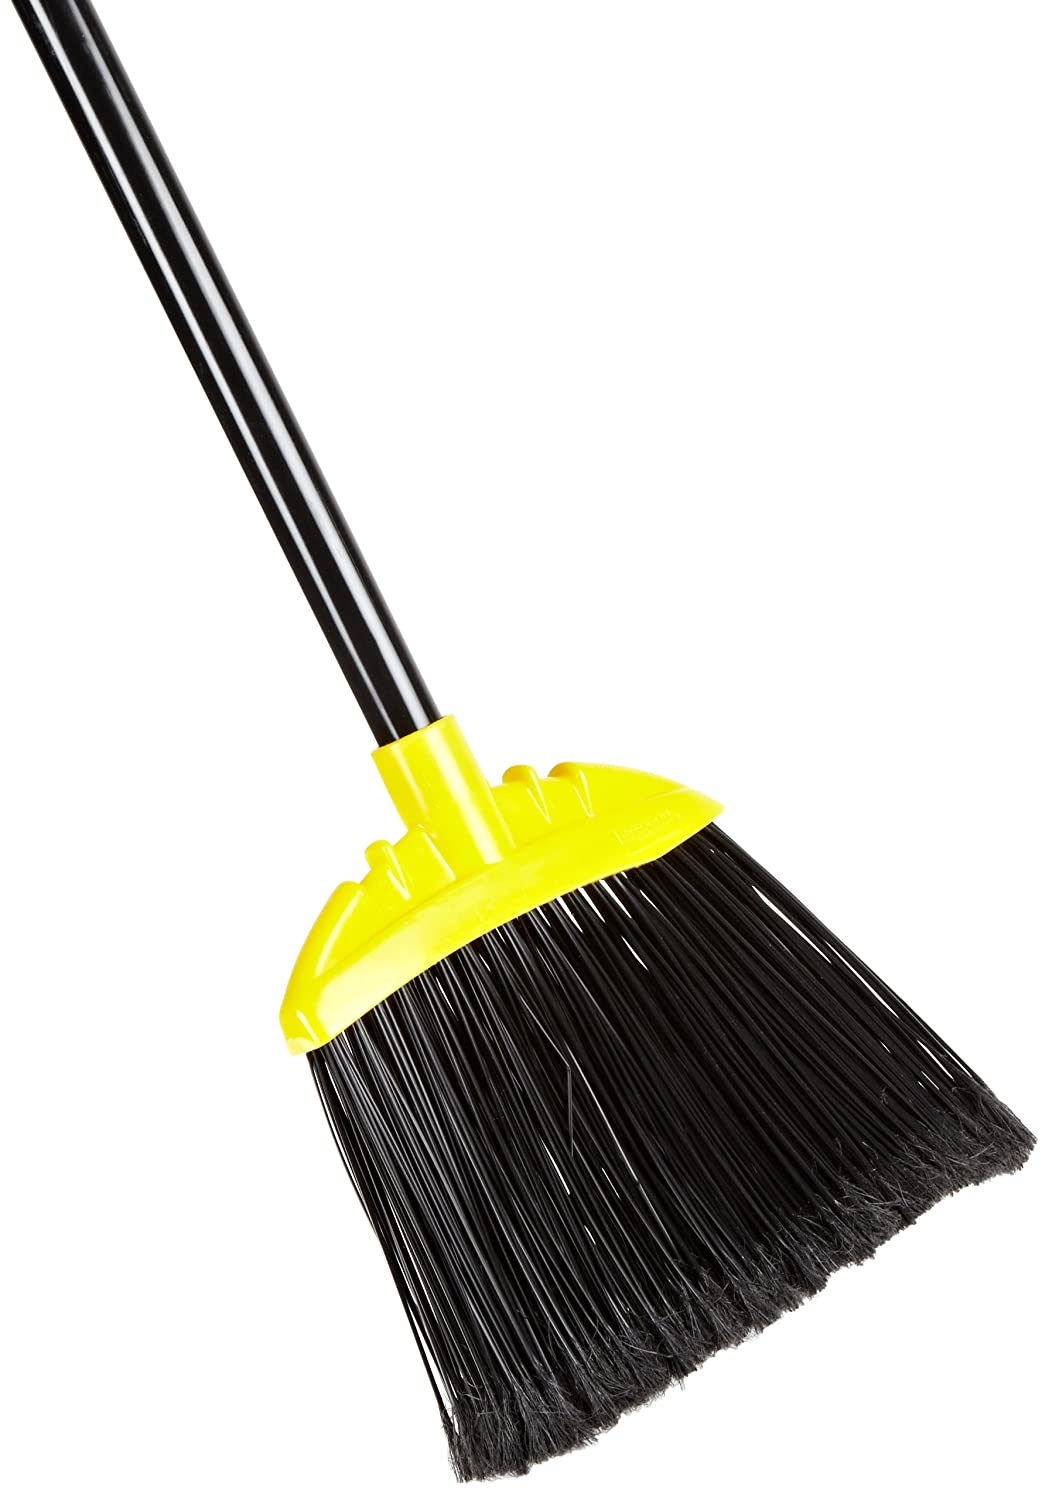 Rubbermaid Commercial Jumbo Smooth Sweep Polypropylene Angle Broom with Black Metal Handle, 10-Inch Head Width, Black (FG638906BLA) Rubbermaid Commercial Products